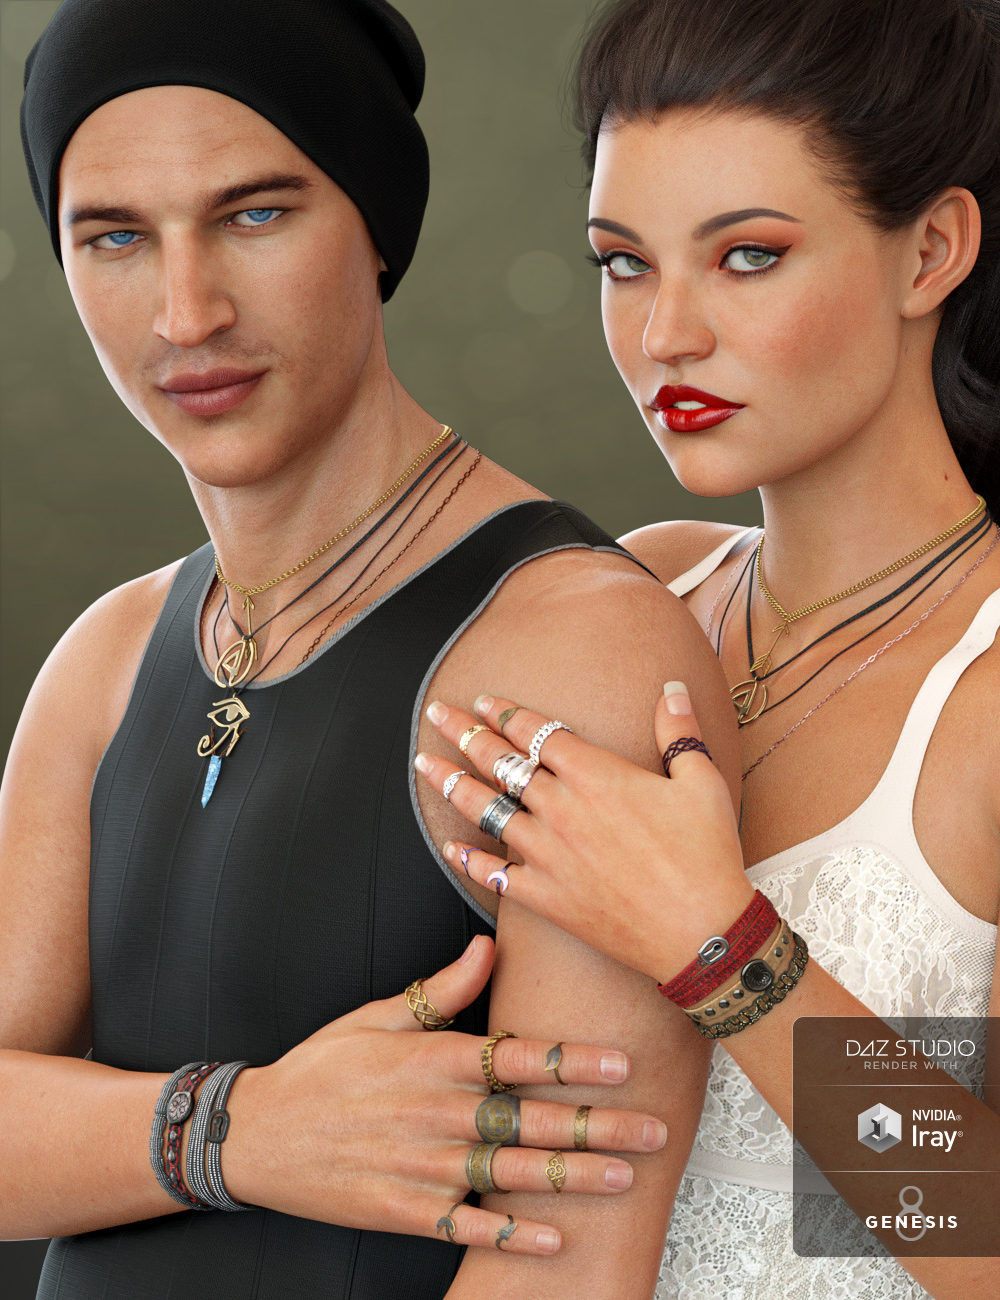 Unisex Jewelry for Genesis 8 Male(s) & Female(s) by: Moonscape GraphicsNikisatezSade, 3D Models by Daz 3D